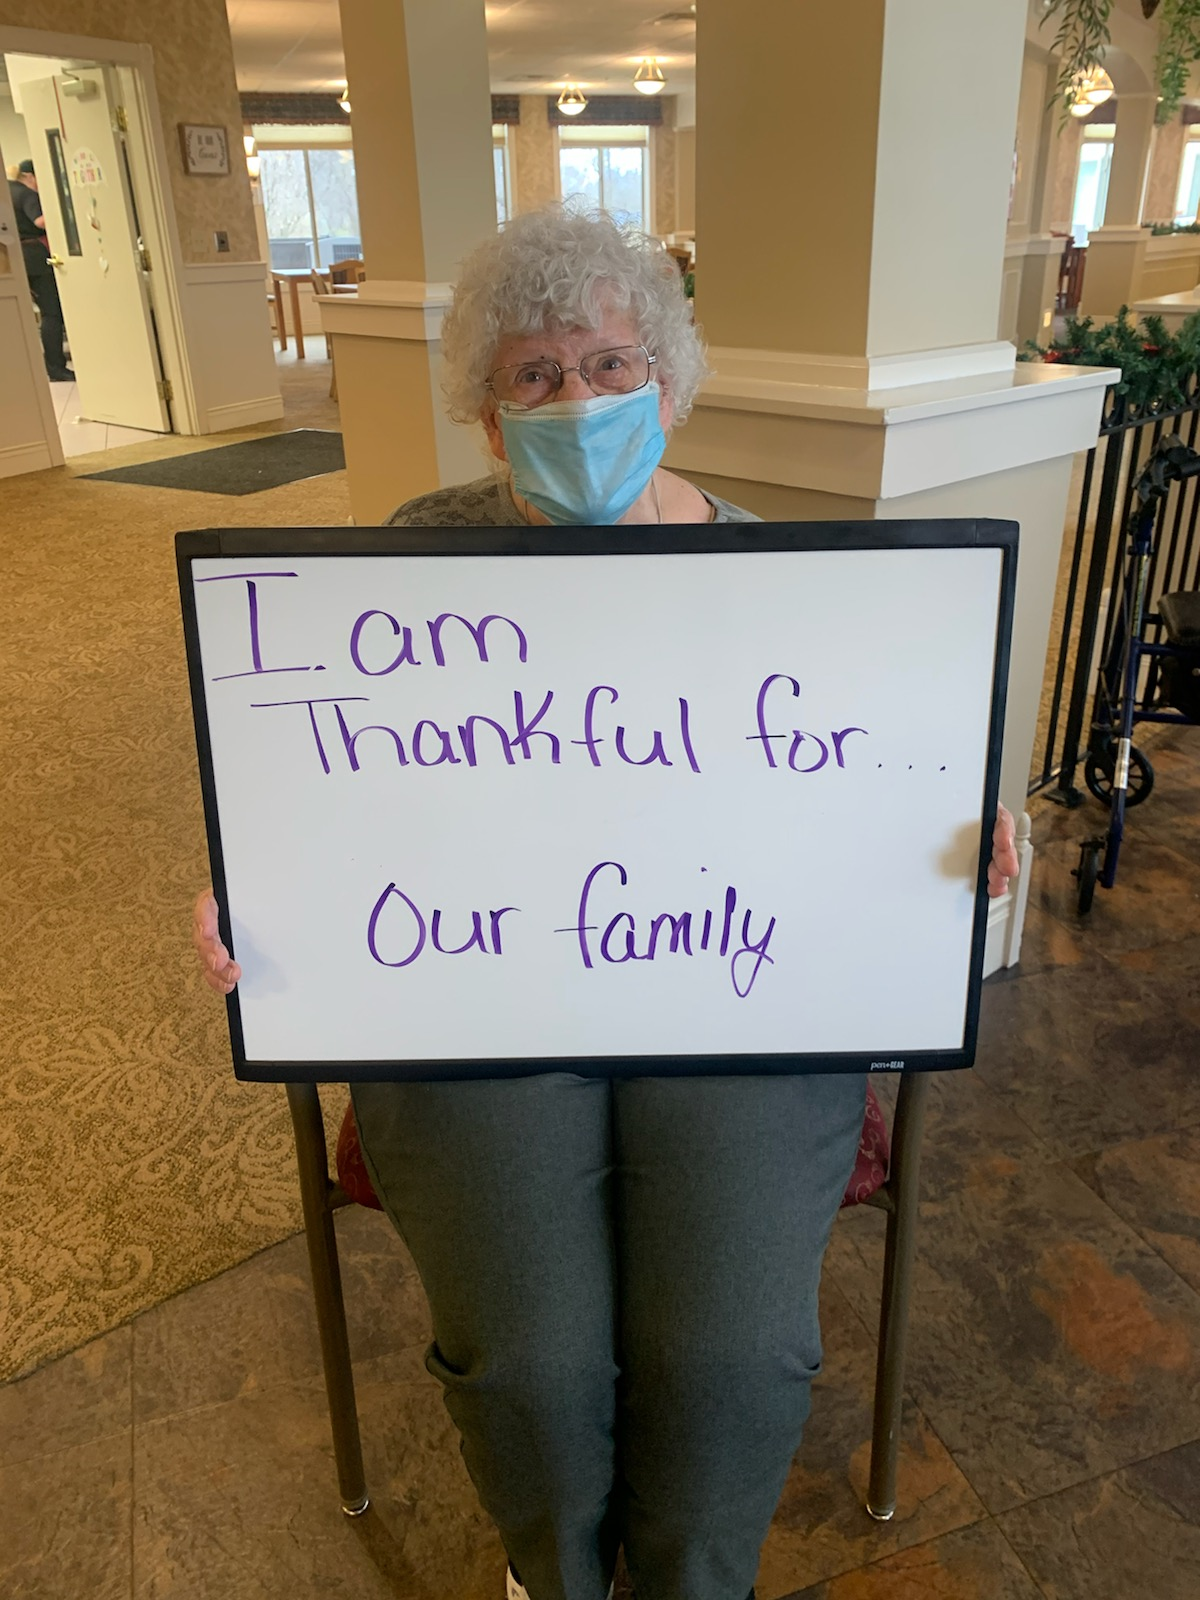 Shirley says that she is thankful for family.